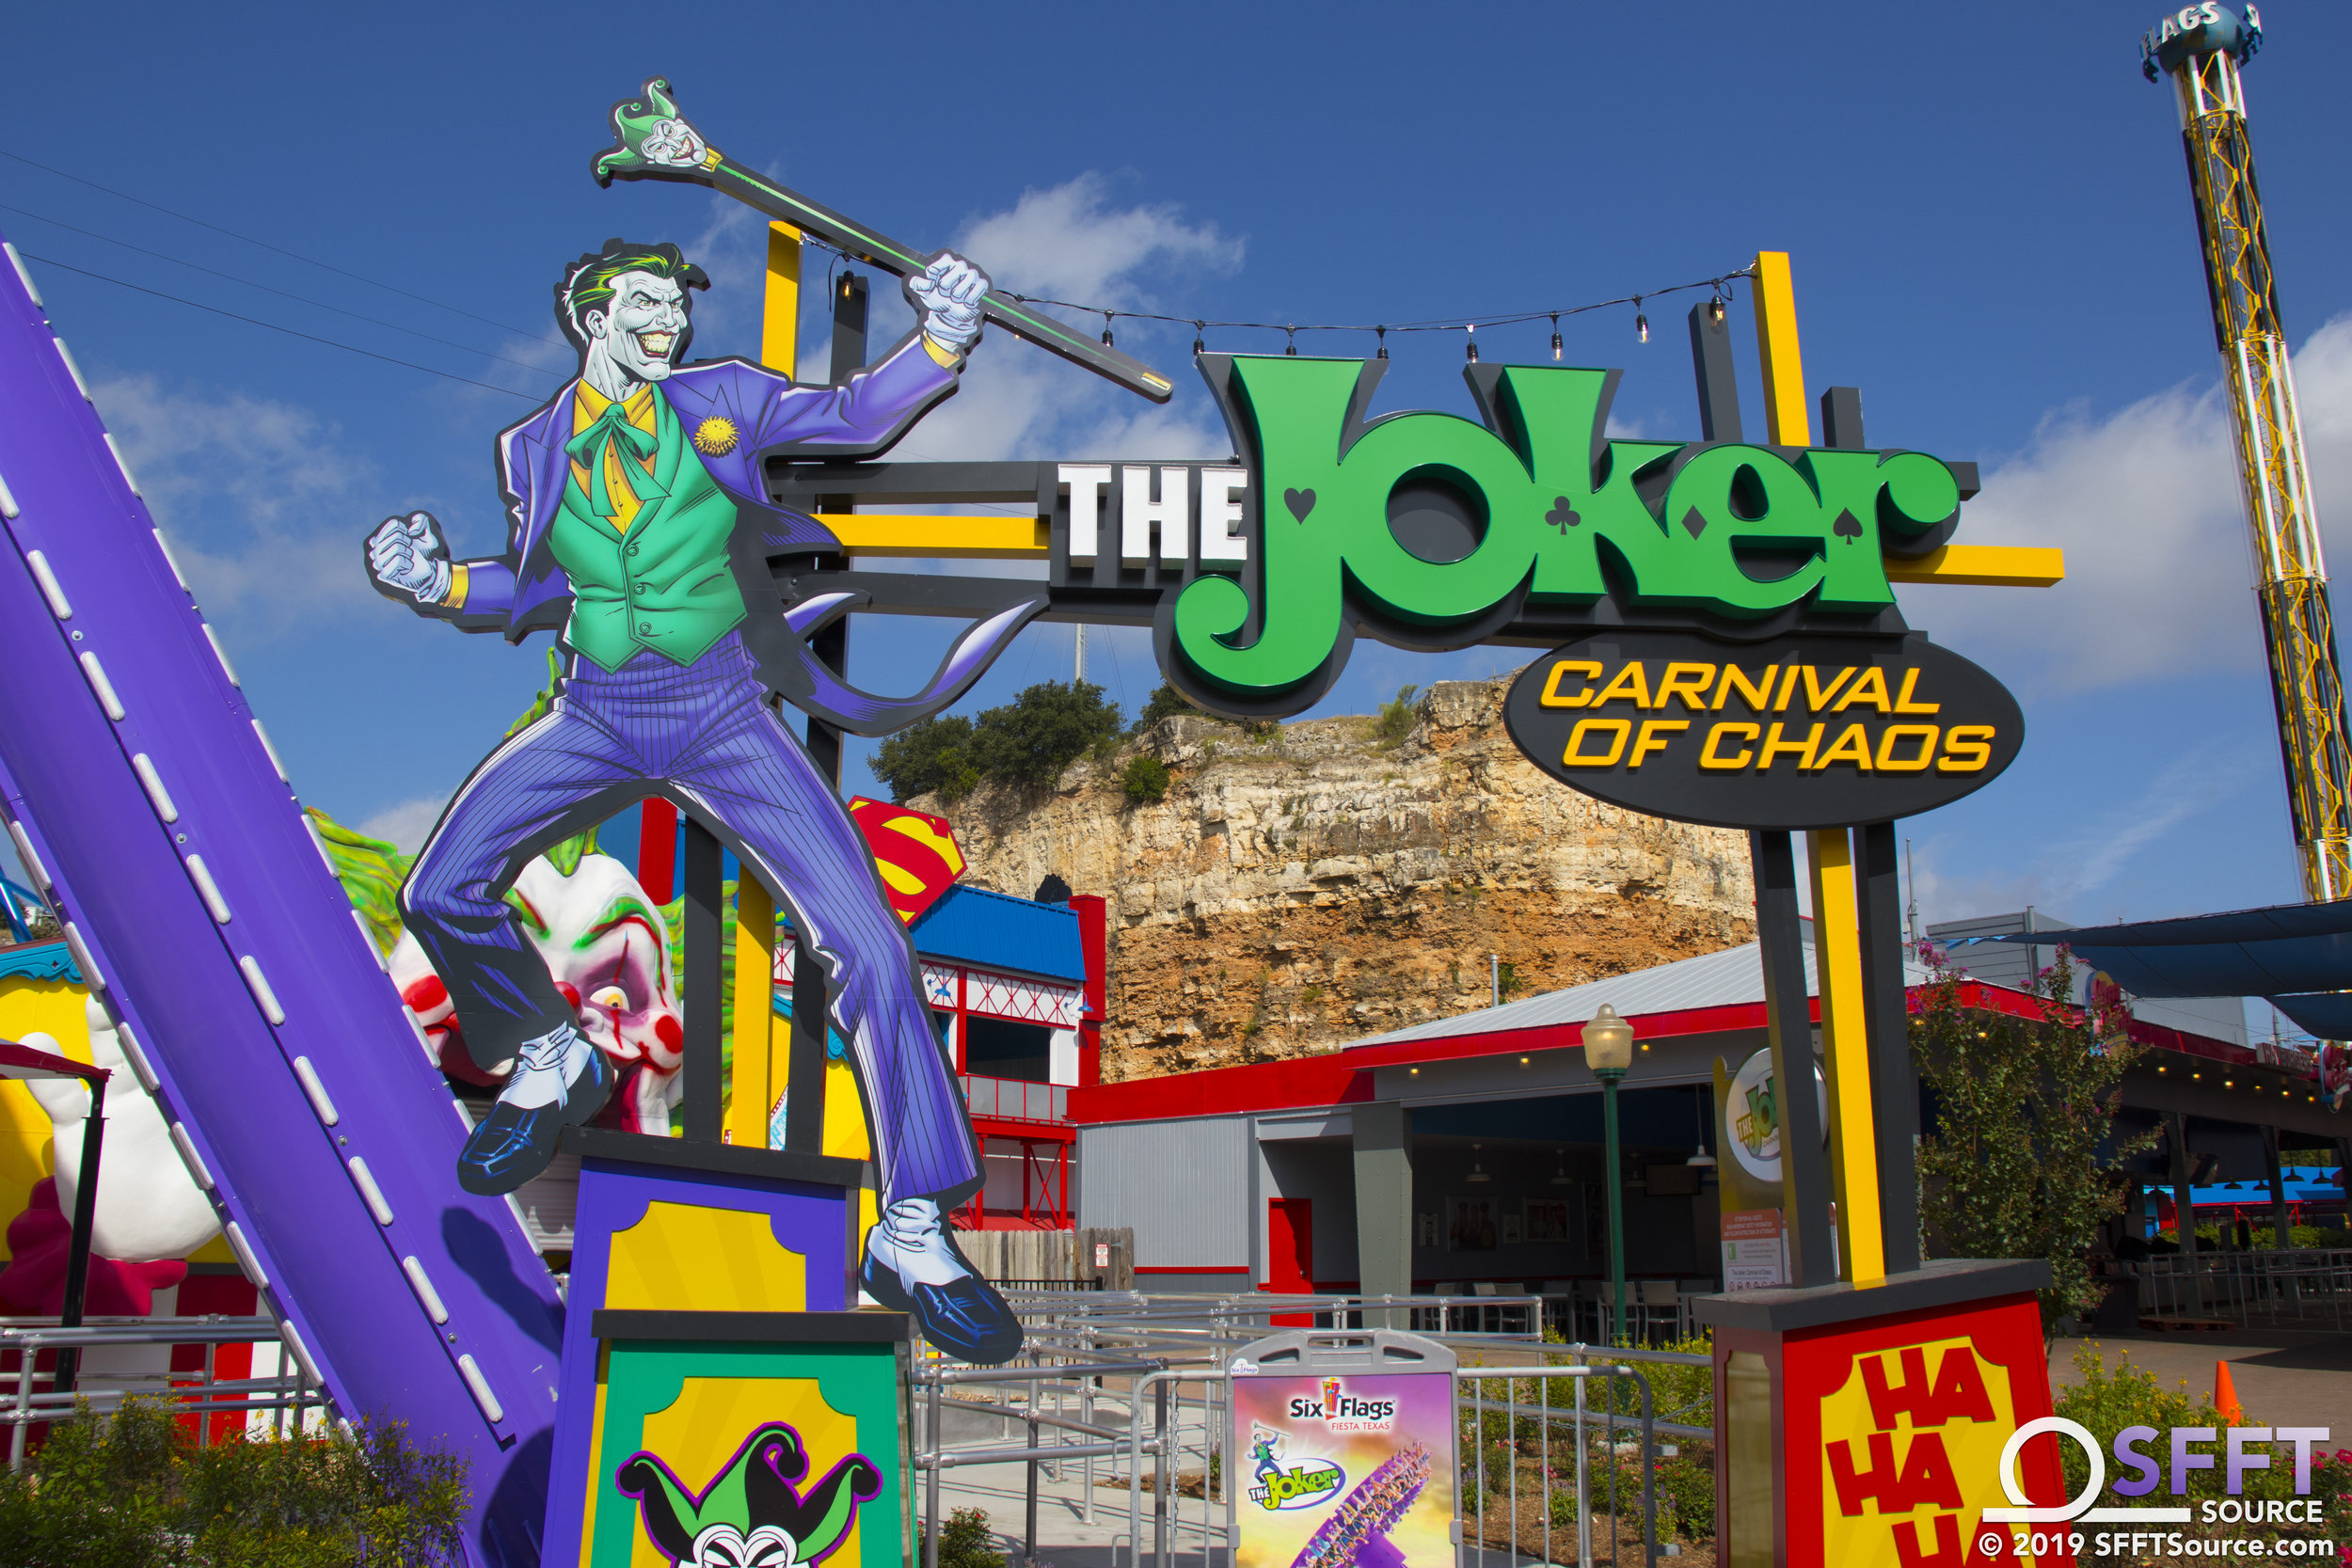 The main entrance to The Joker Carnival of Chaos.